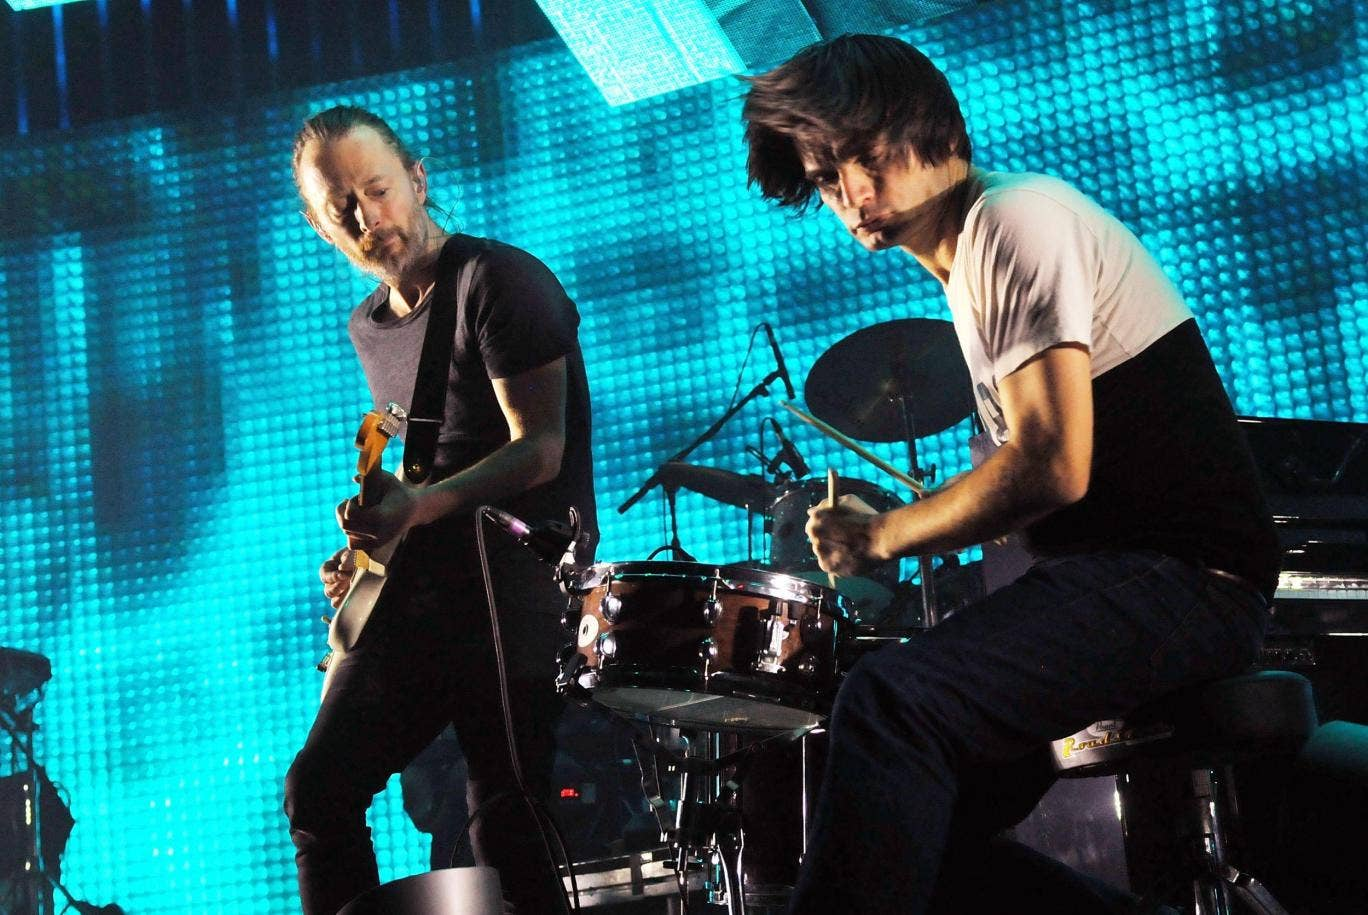 Radiohead Hint at Impending Album Release With New Company